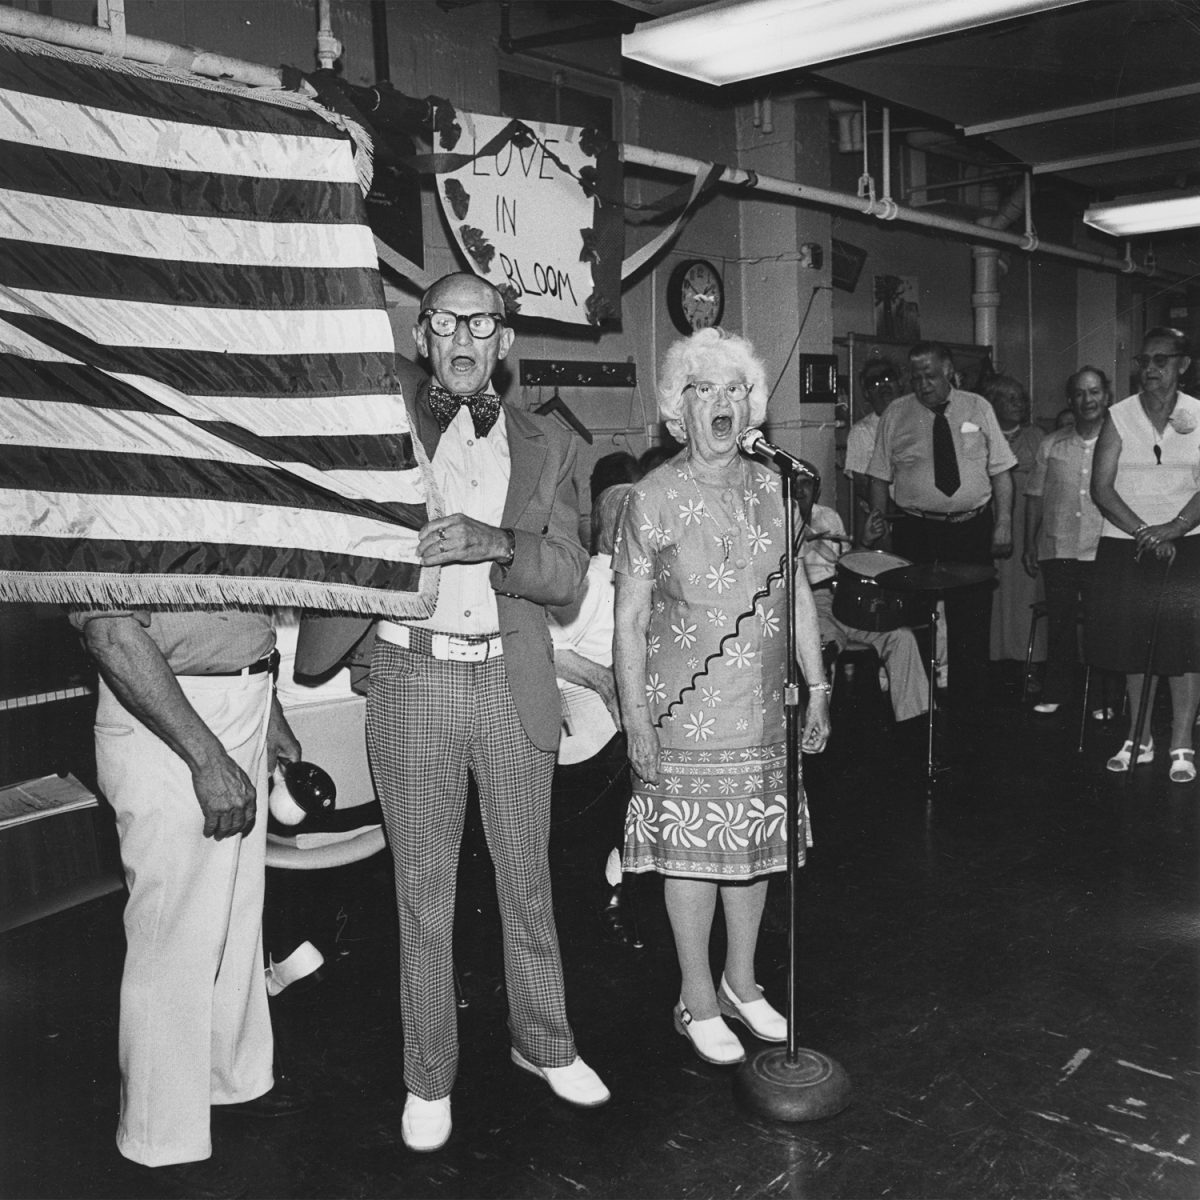 New York Love in Bloom - G-d Bless America. Henry Street Settlement. Good Companions Senior Centre - 1978